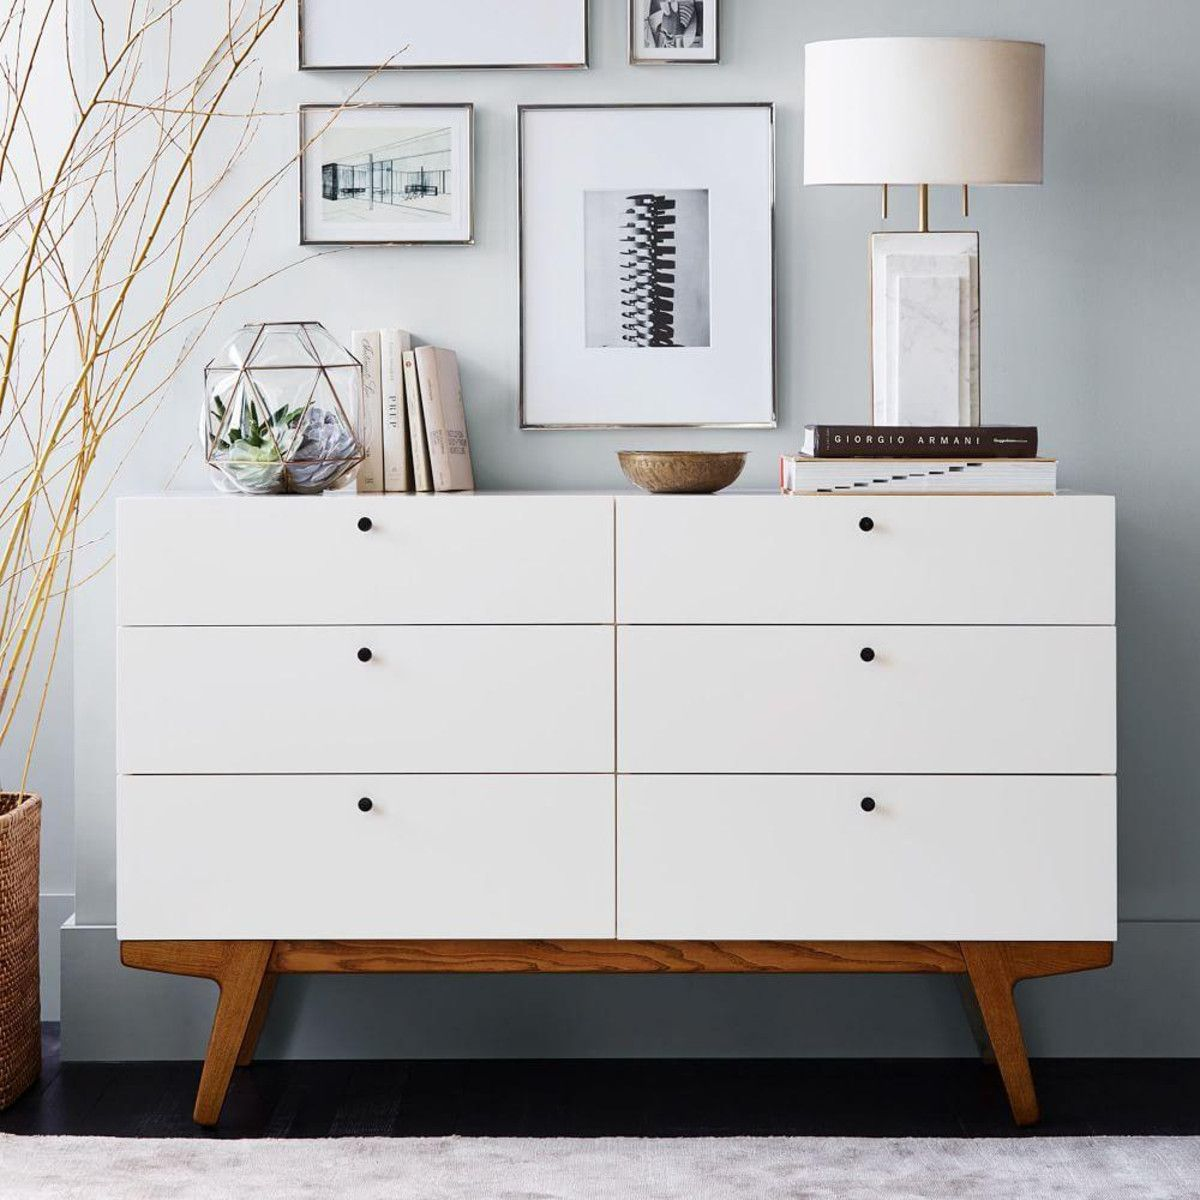 Modern 6 Drawer Dresser In 2020 Home Decor Bedroom Furniture Home